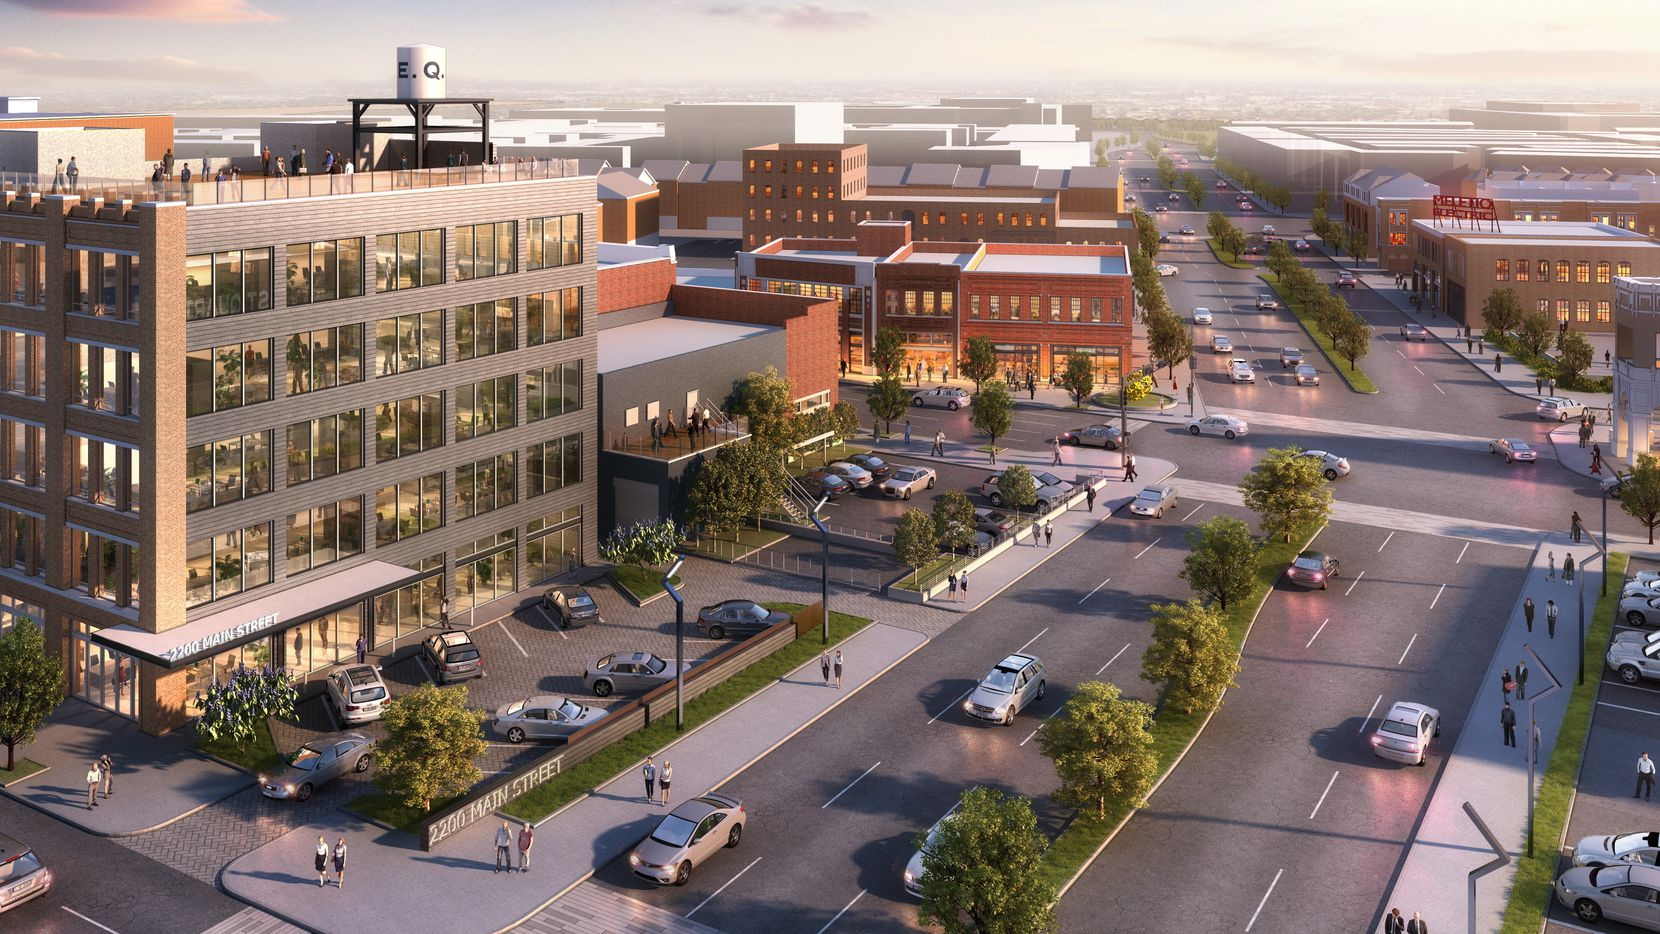 The tech firm Dialexa will be a major new tenant in the East Quarter development in downtown Dallas.